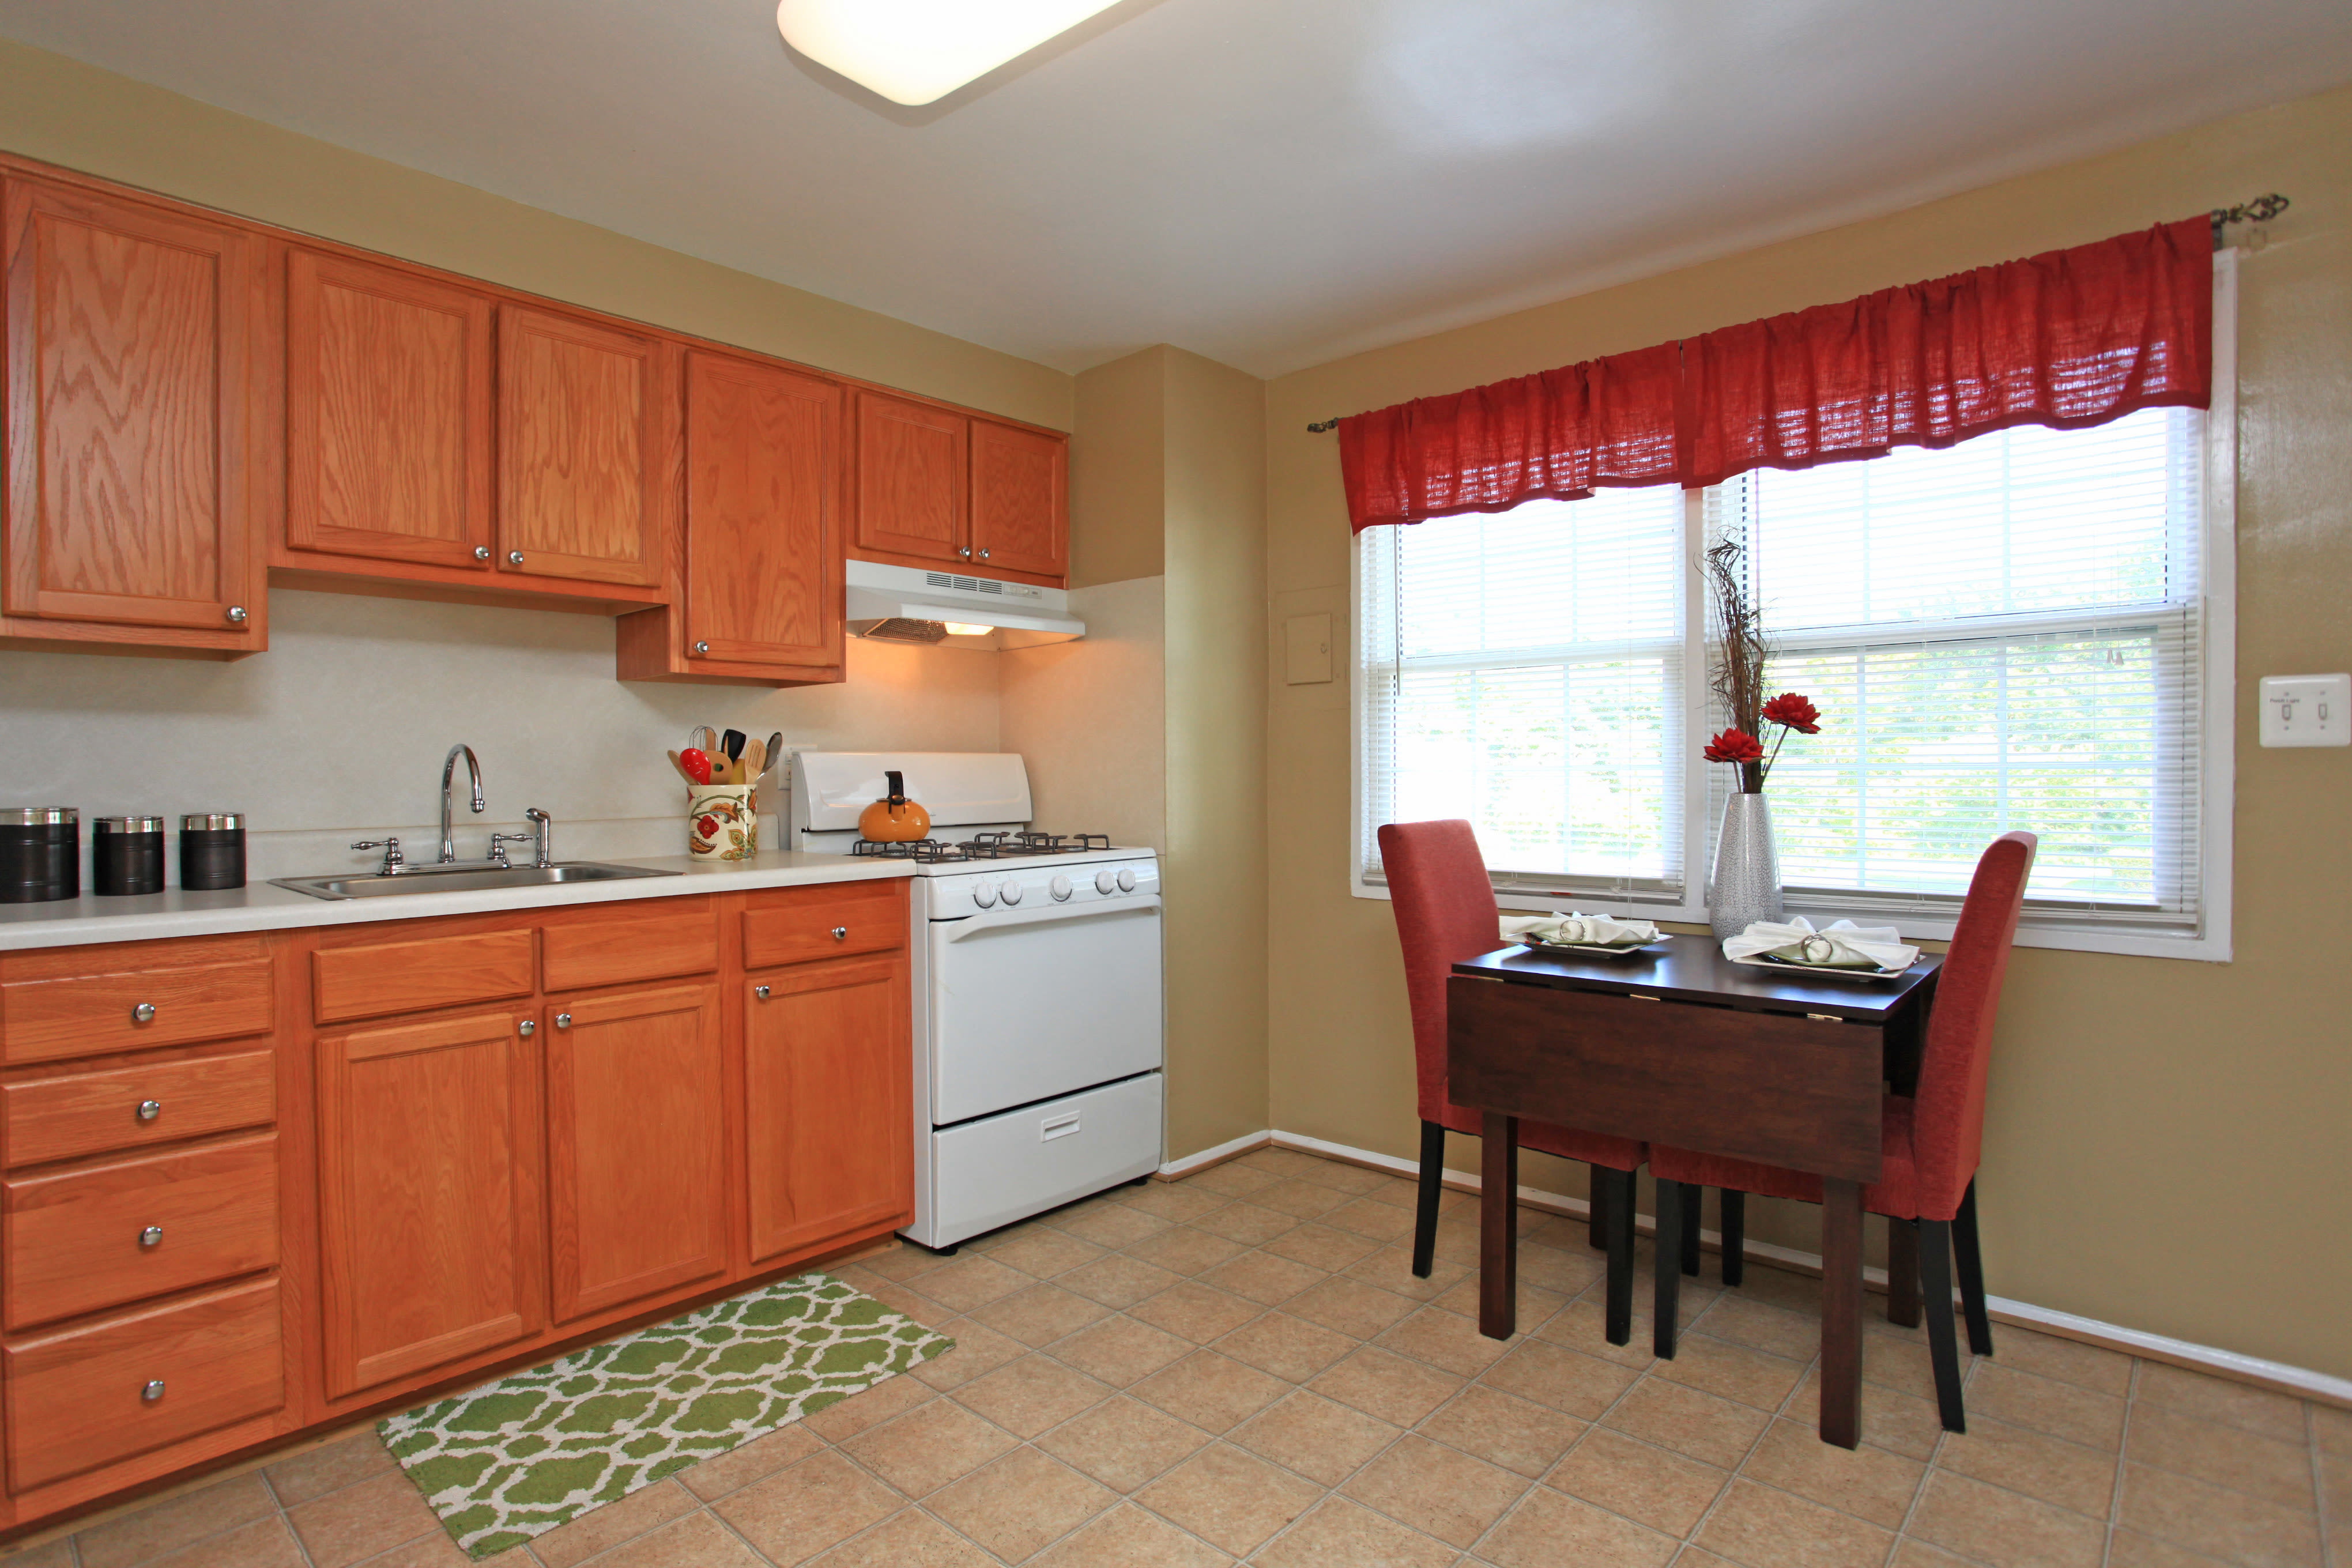 Modern kitchen at apartments in Halethorpe, Maryland